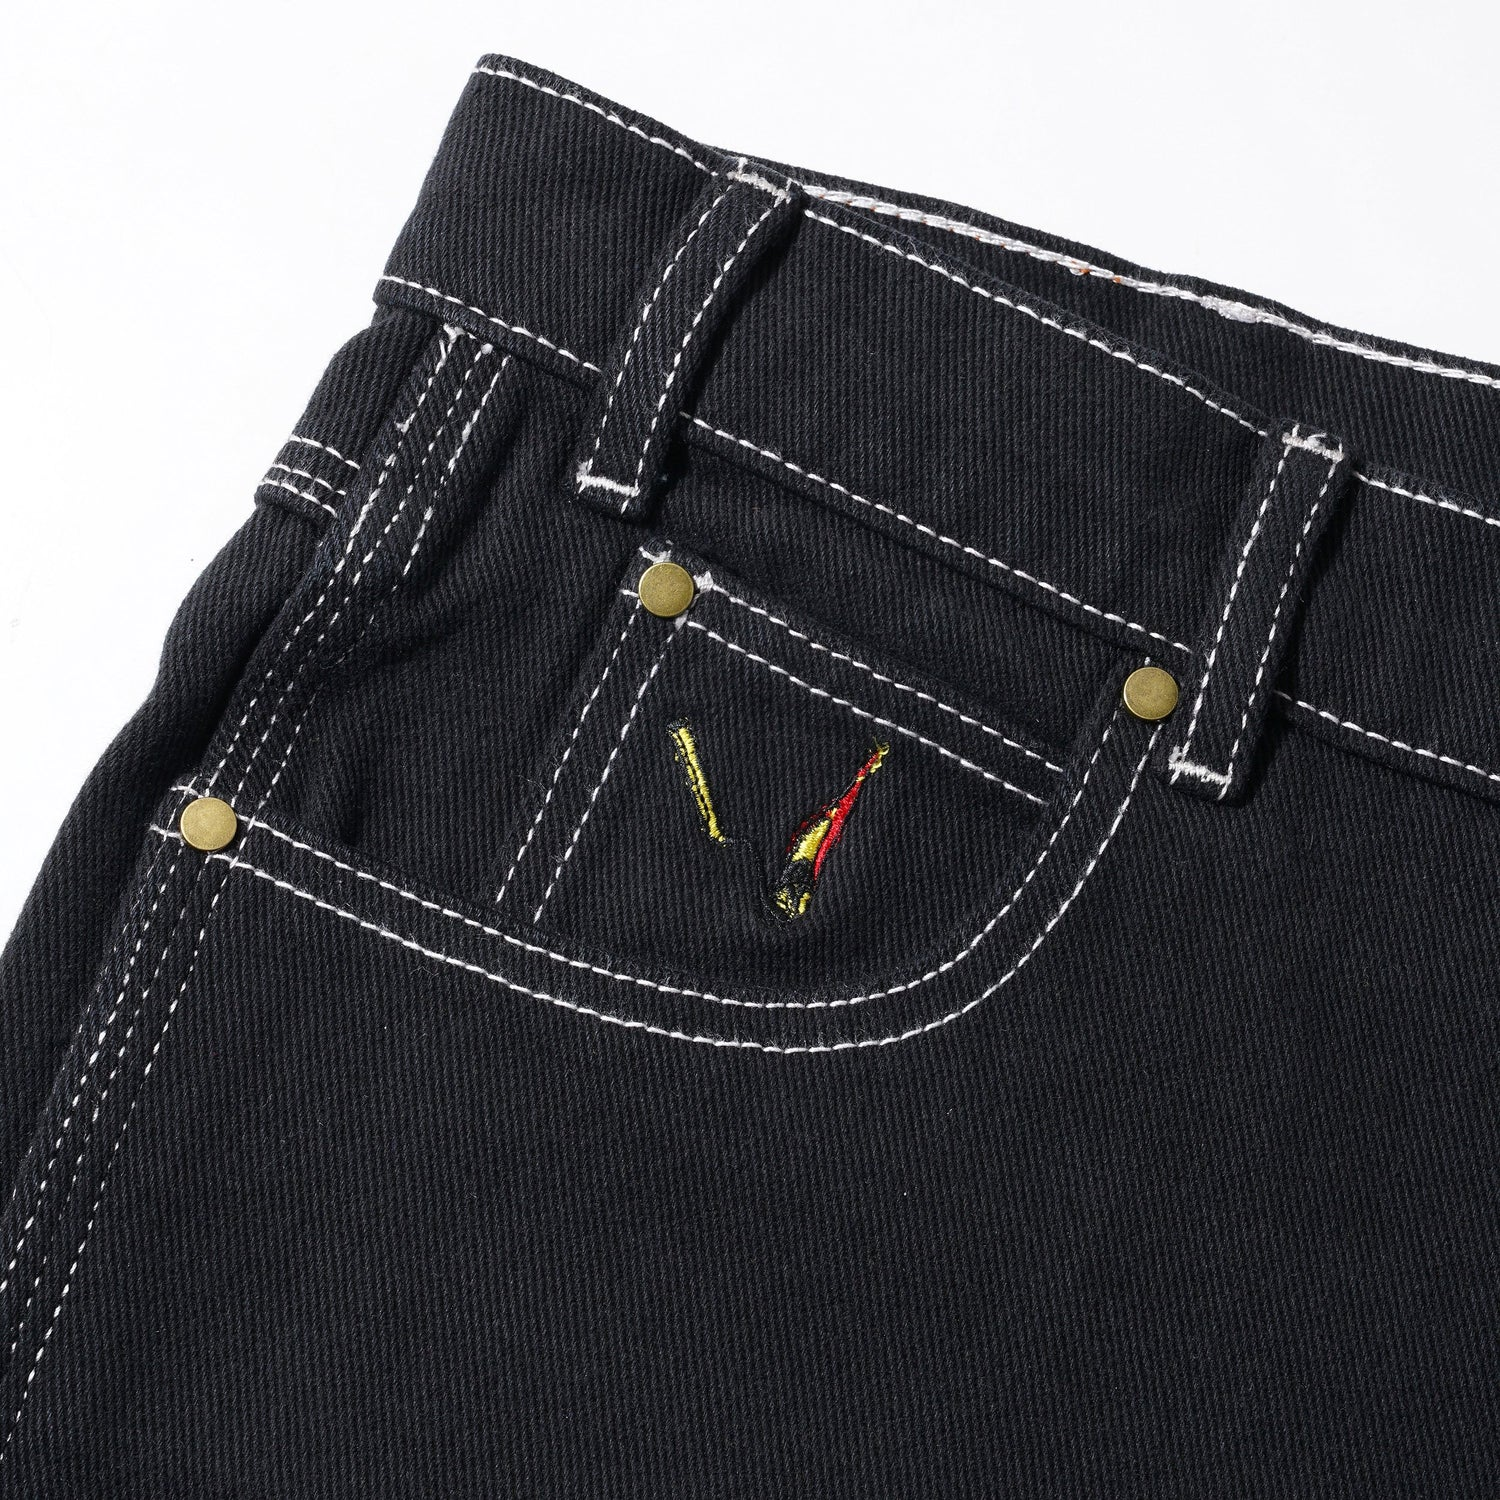 Overdye Denim Work Pants, Black